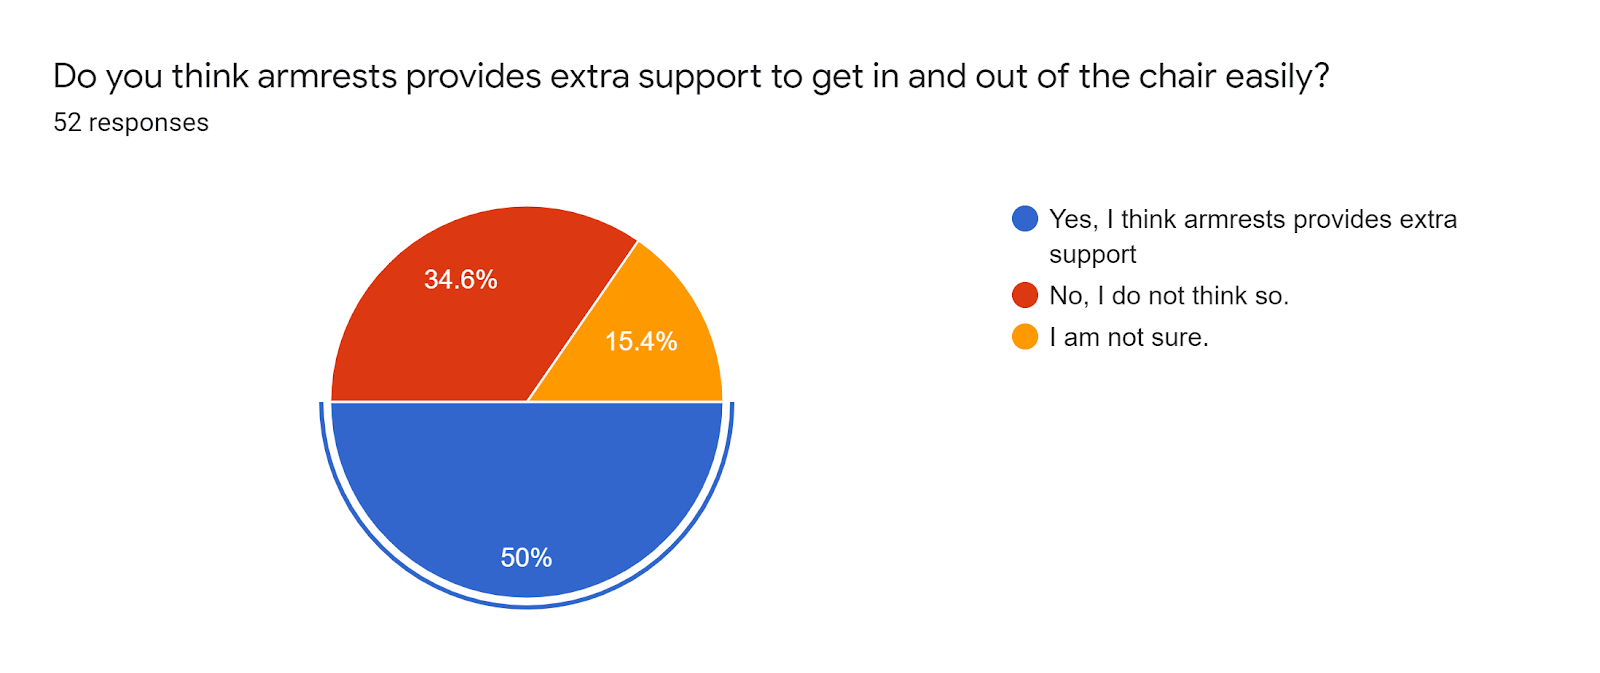 Forms response chart. Question title: Do you think armrests provides extra support to get in and out of the chair easily?. Number of responses: 52 responses.